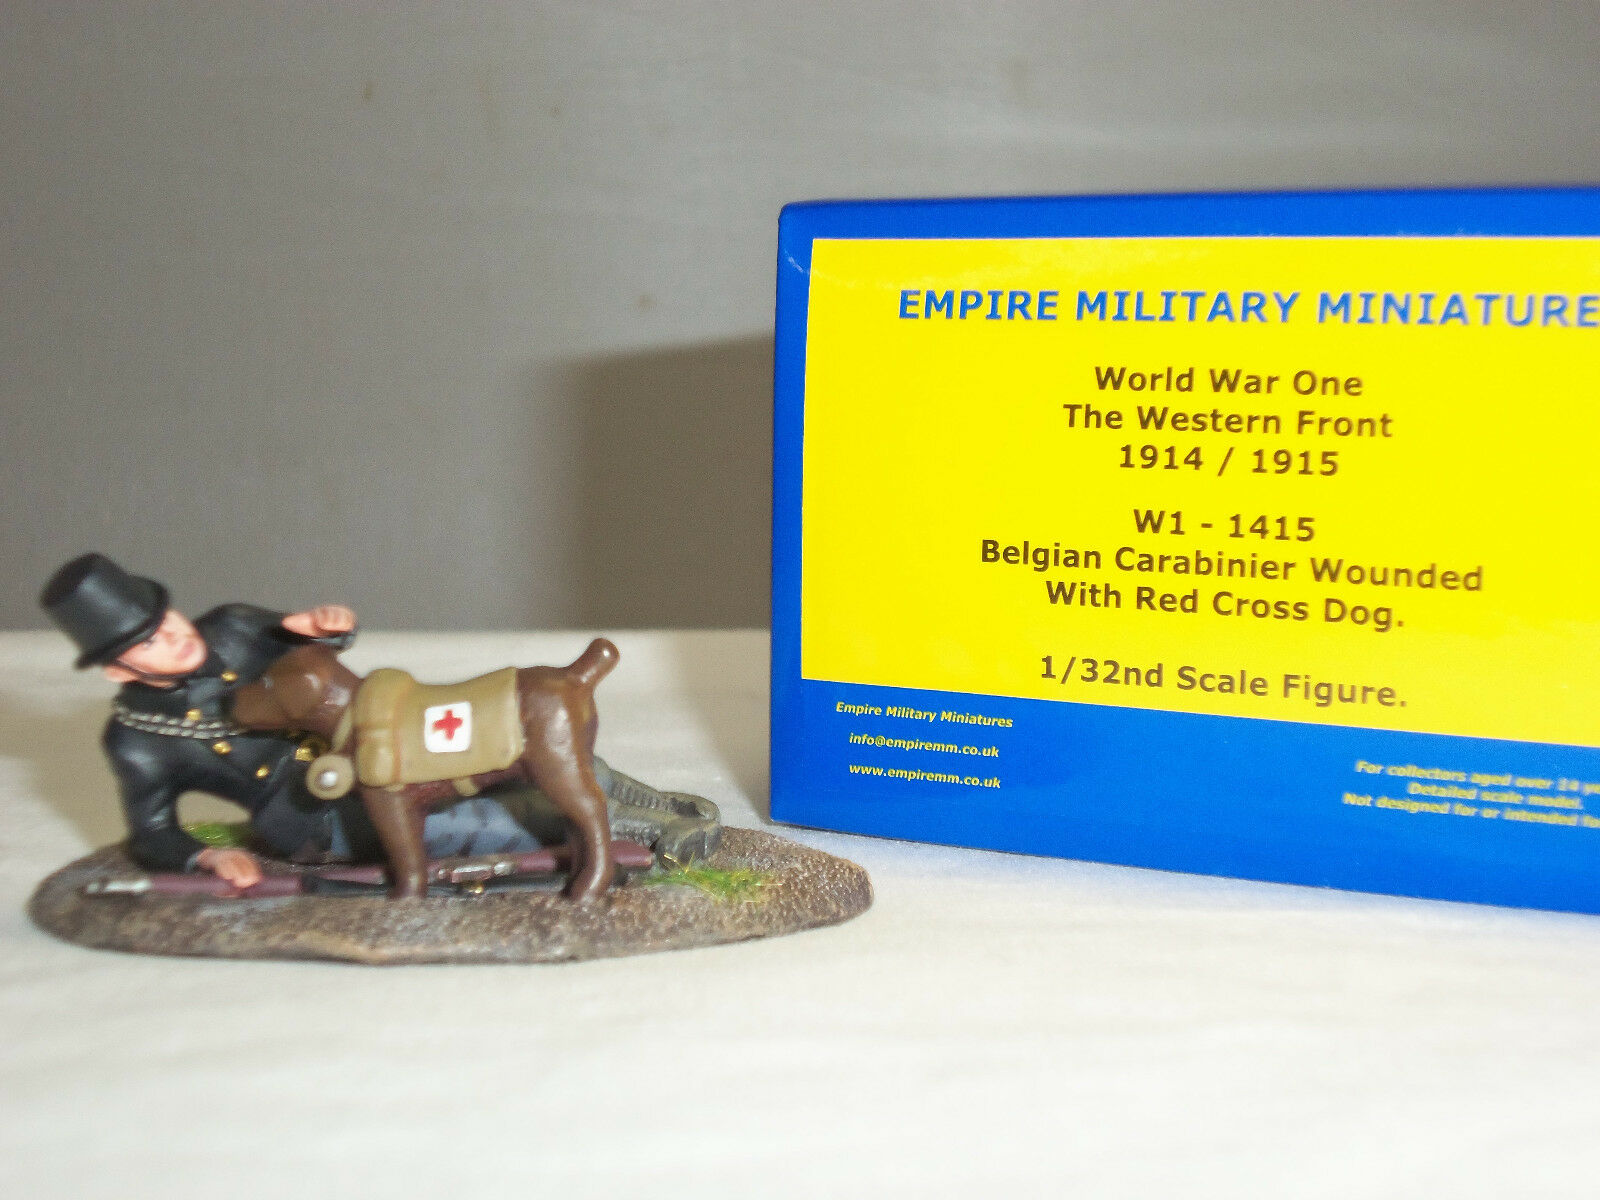 EMPIRE W1-1415 BELGIAN CARABINIER WOUNDED WITH FIRST AID MEDIC DOG TOY SOLDIER